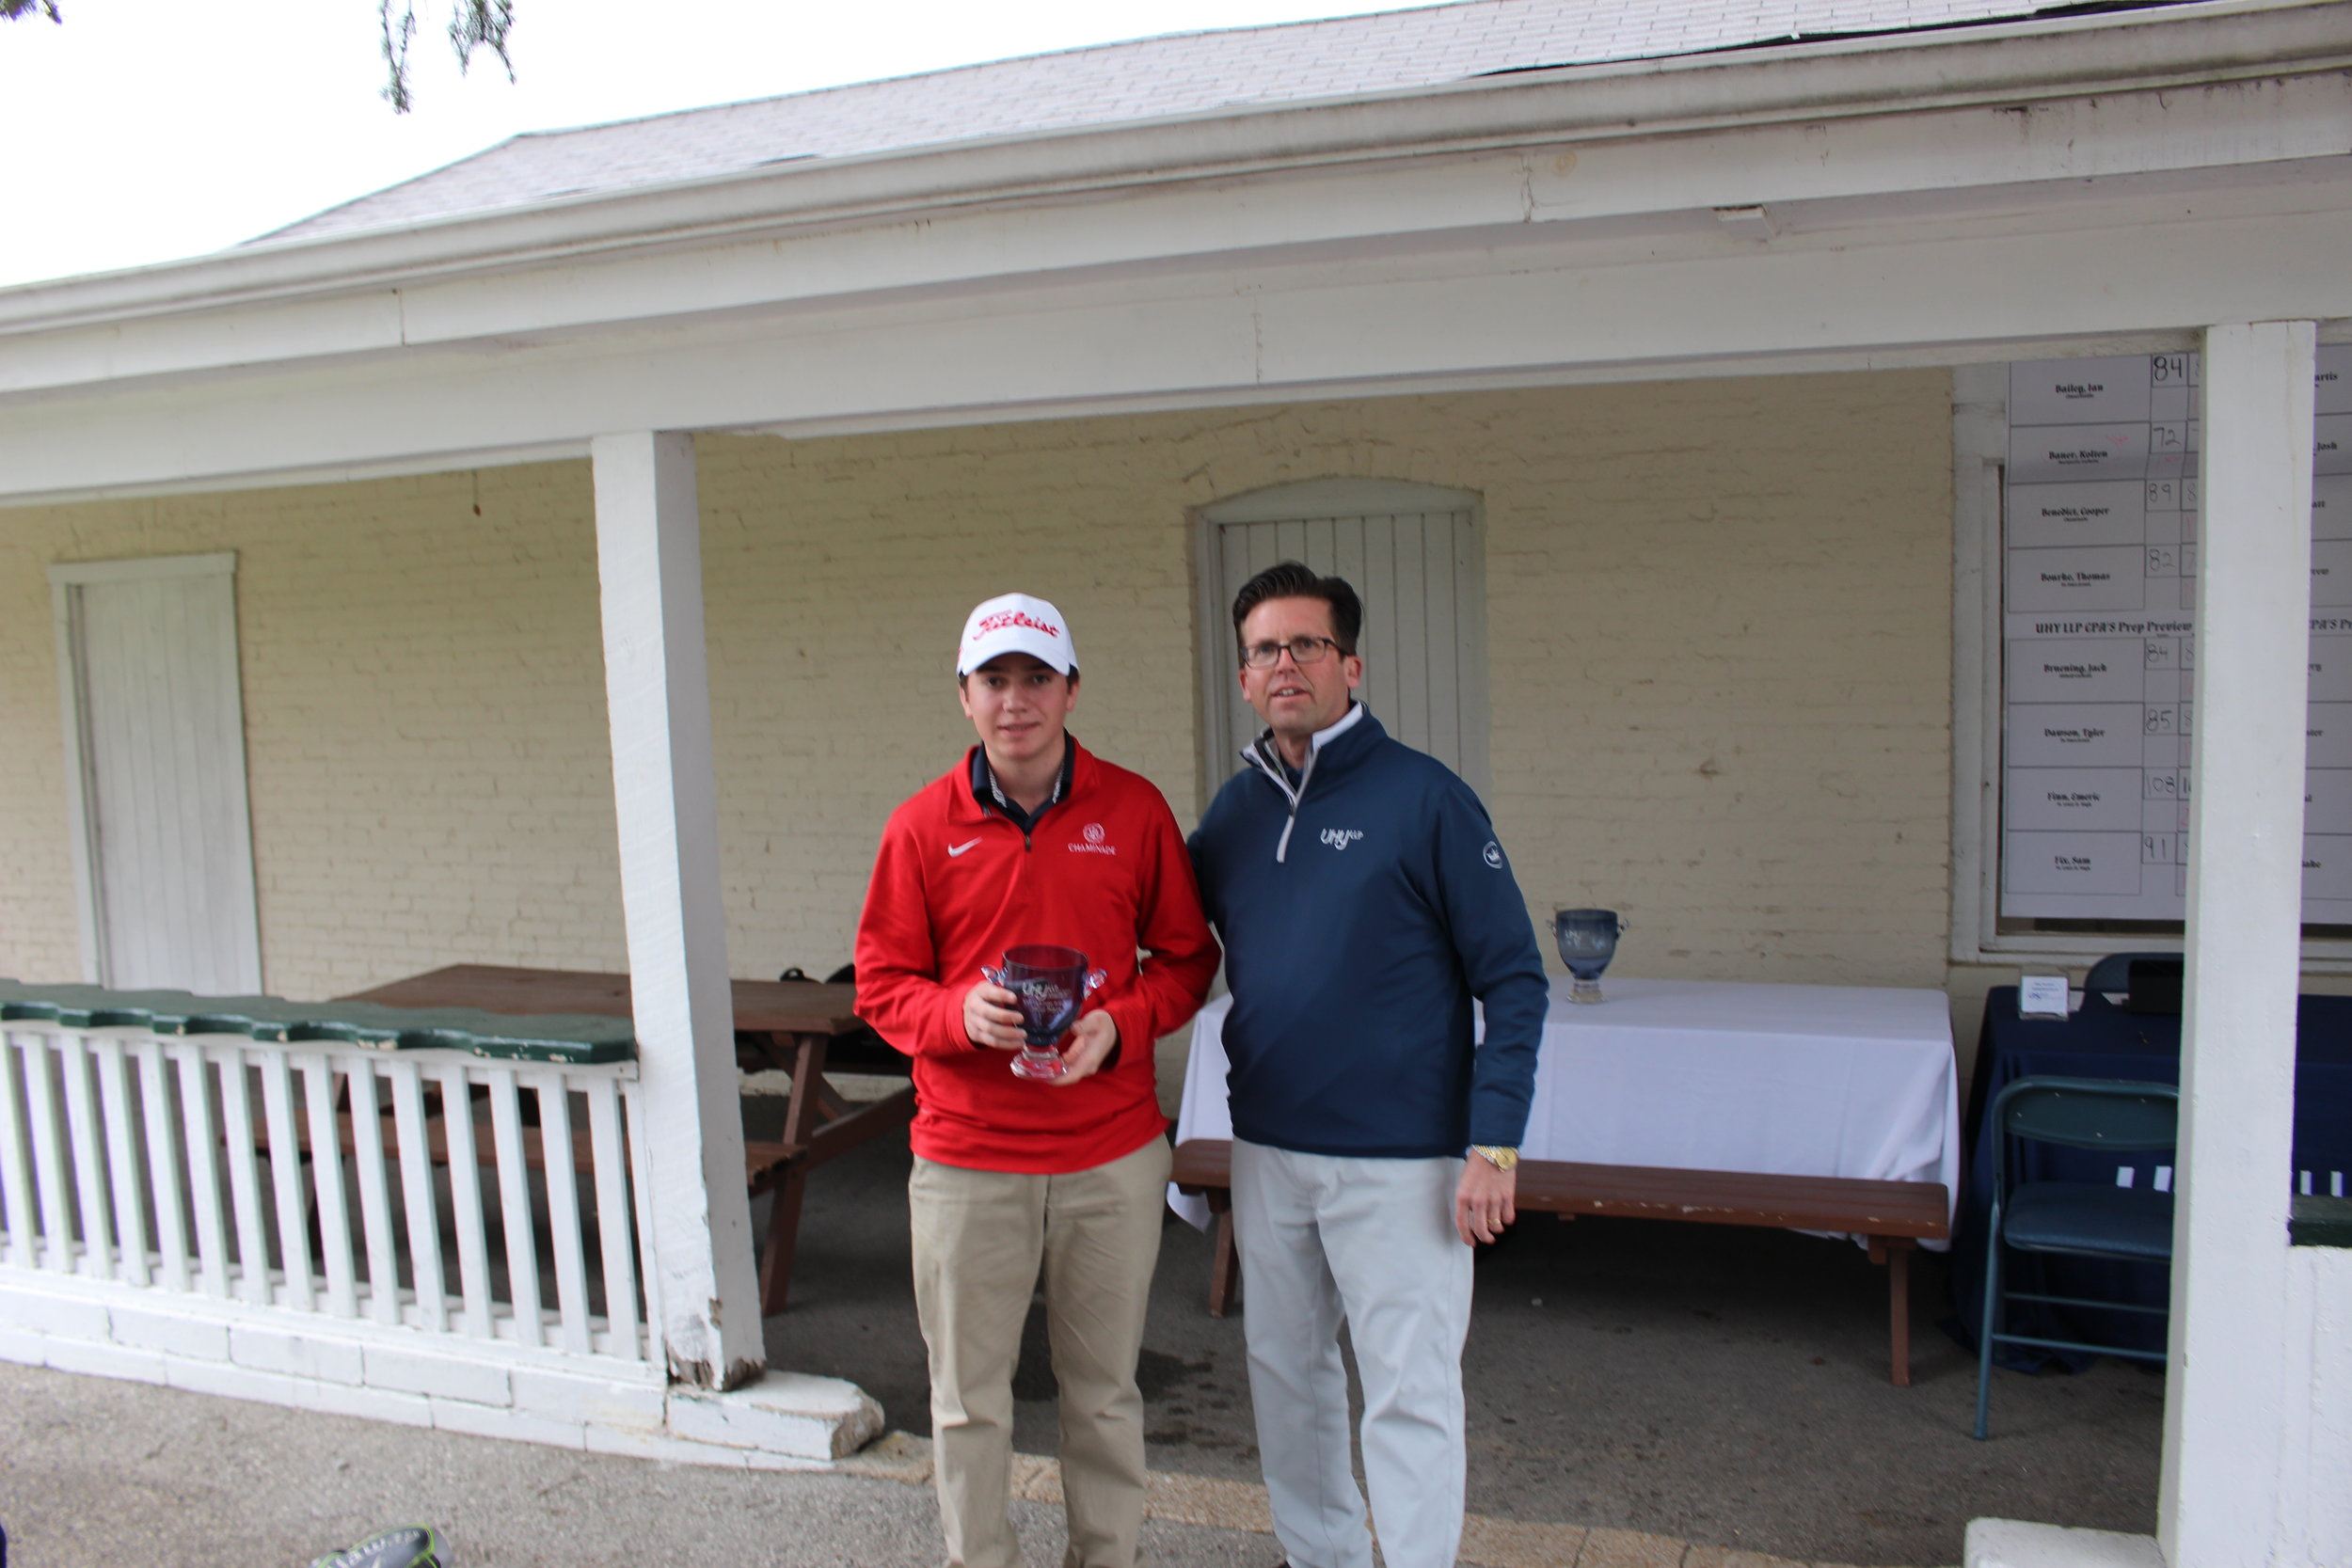 - Chaminade's Josh Heidenry took third place shooting 76-77 for a 11 over part total of 153.